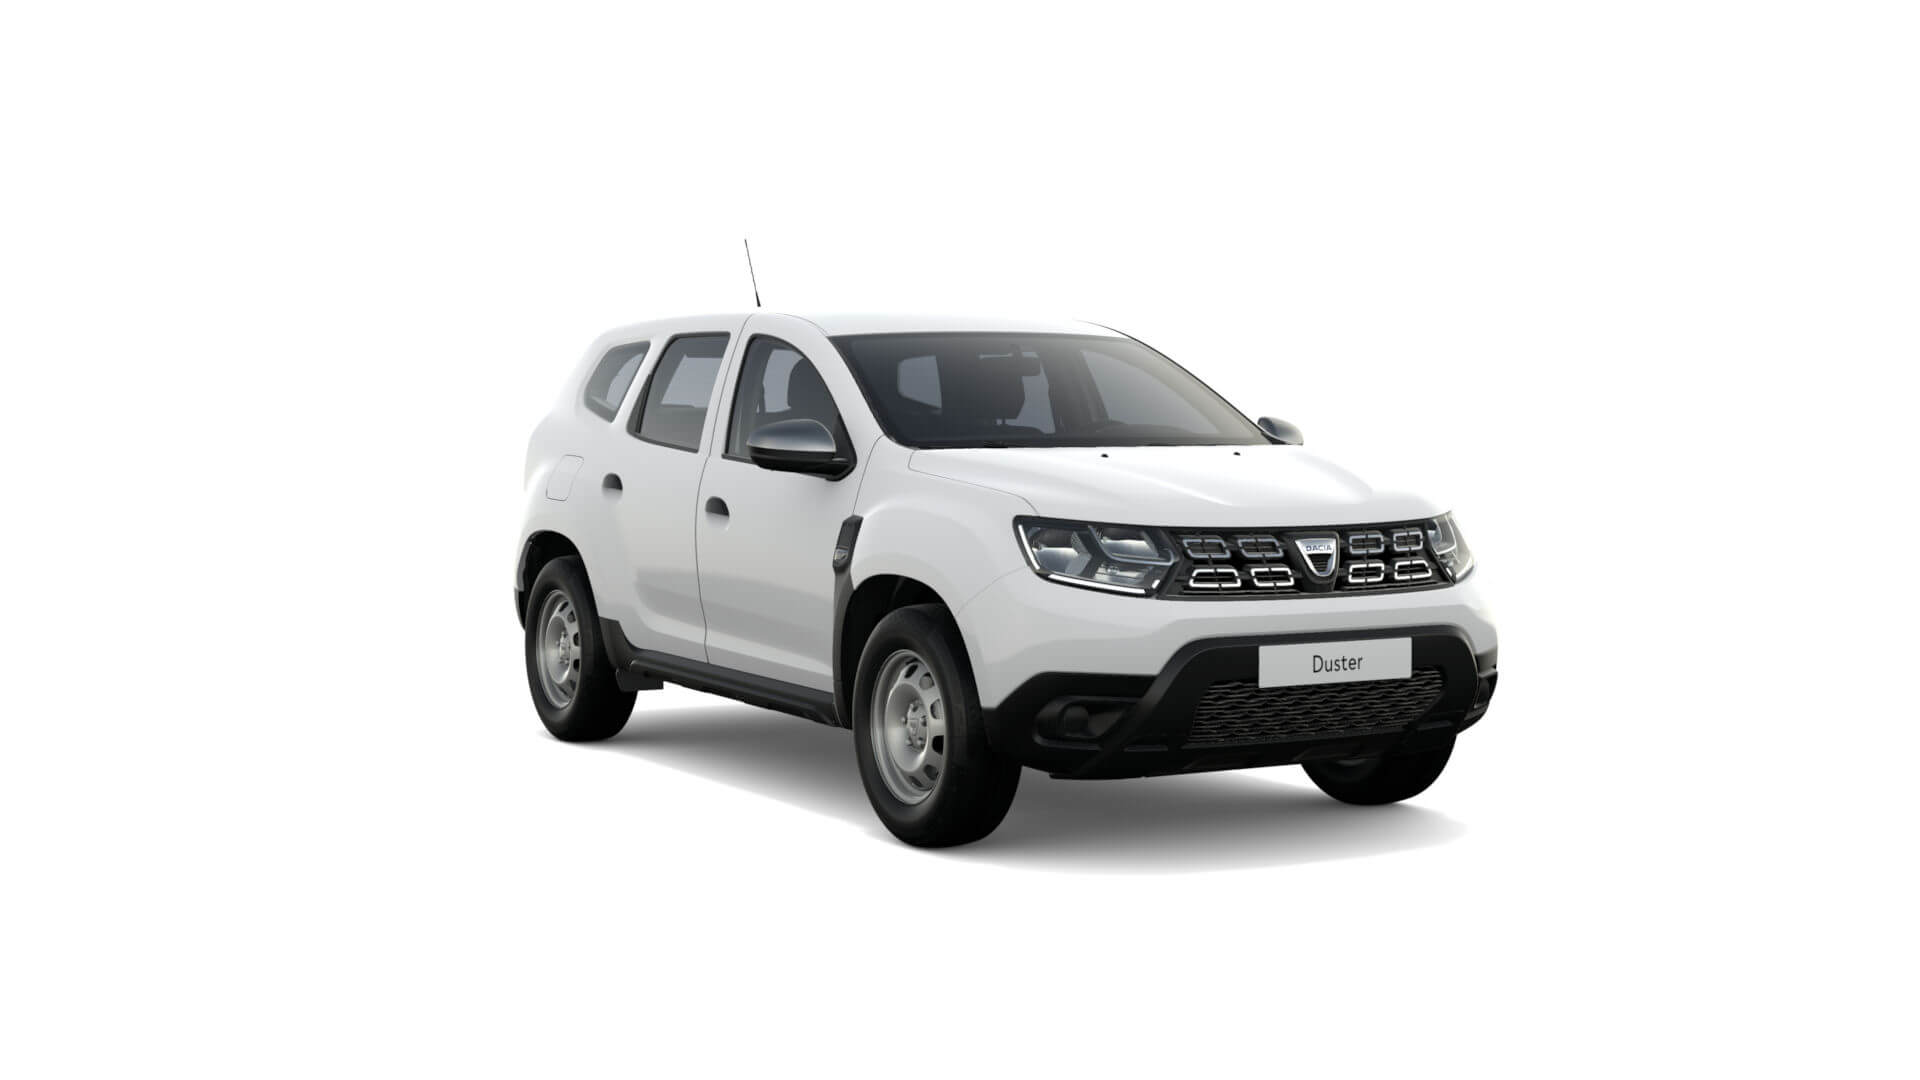 Automodell weiß - Dacia Duster NFZ - Renault Ahrens Hannover